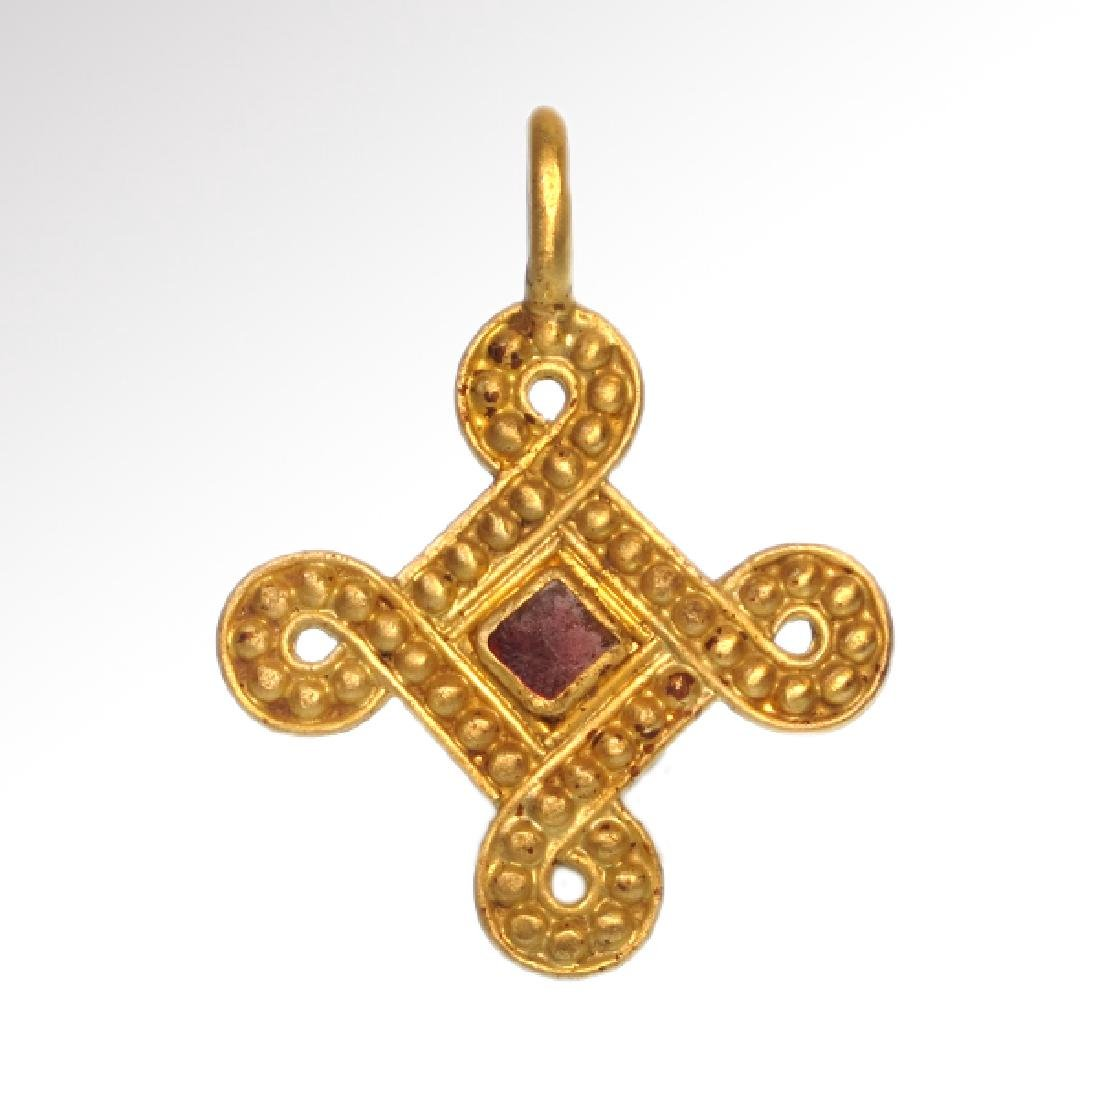 Viking Entwined Gold Cross Pendant with Garnet